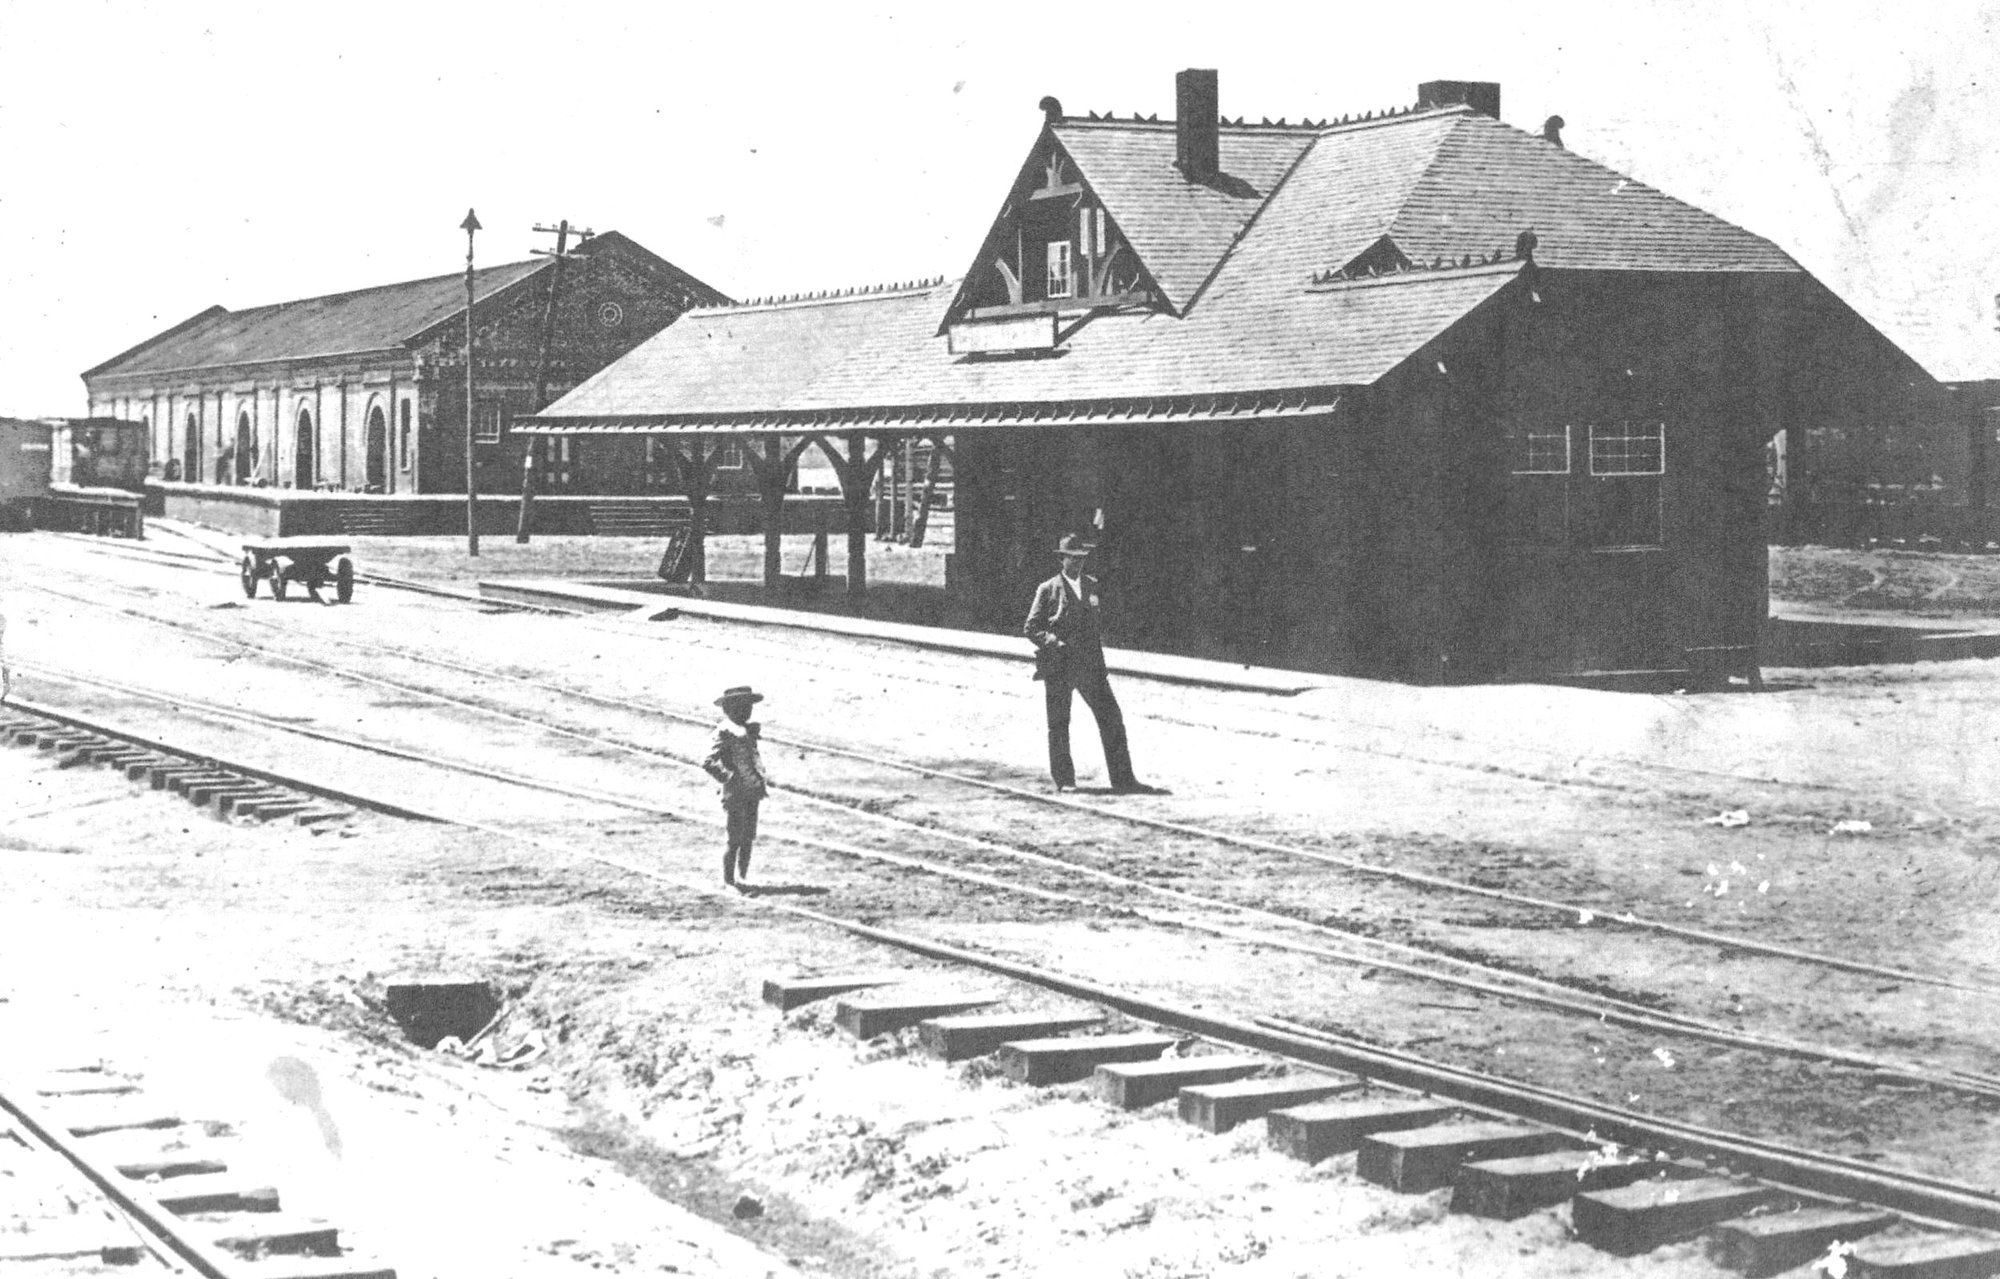 The ACL station and freight warehouse are seen. Sumter railroads were strategically located between Key West and New York, reducing freight rates and resulting in quicker schedules.